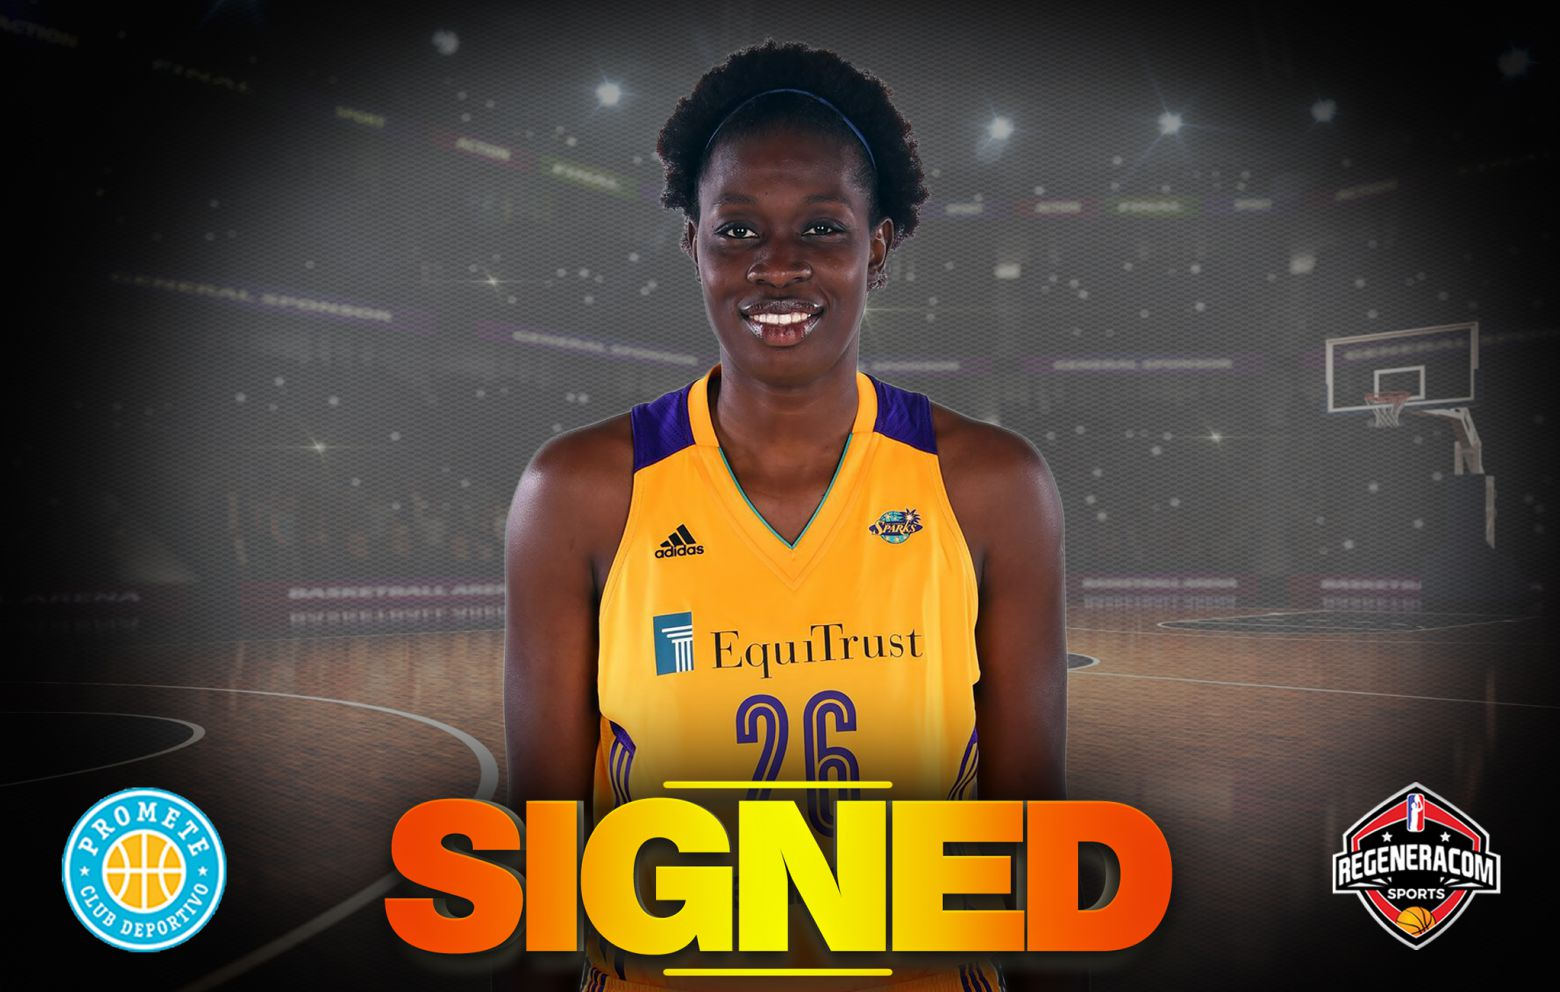 MAIMOUNA DIARRA has signed in Spain with Campus Promete